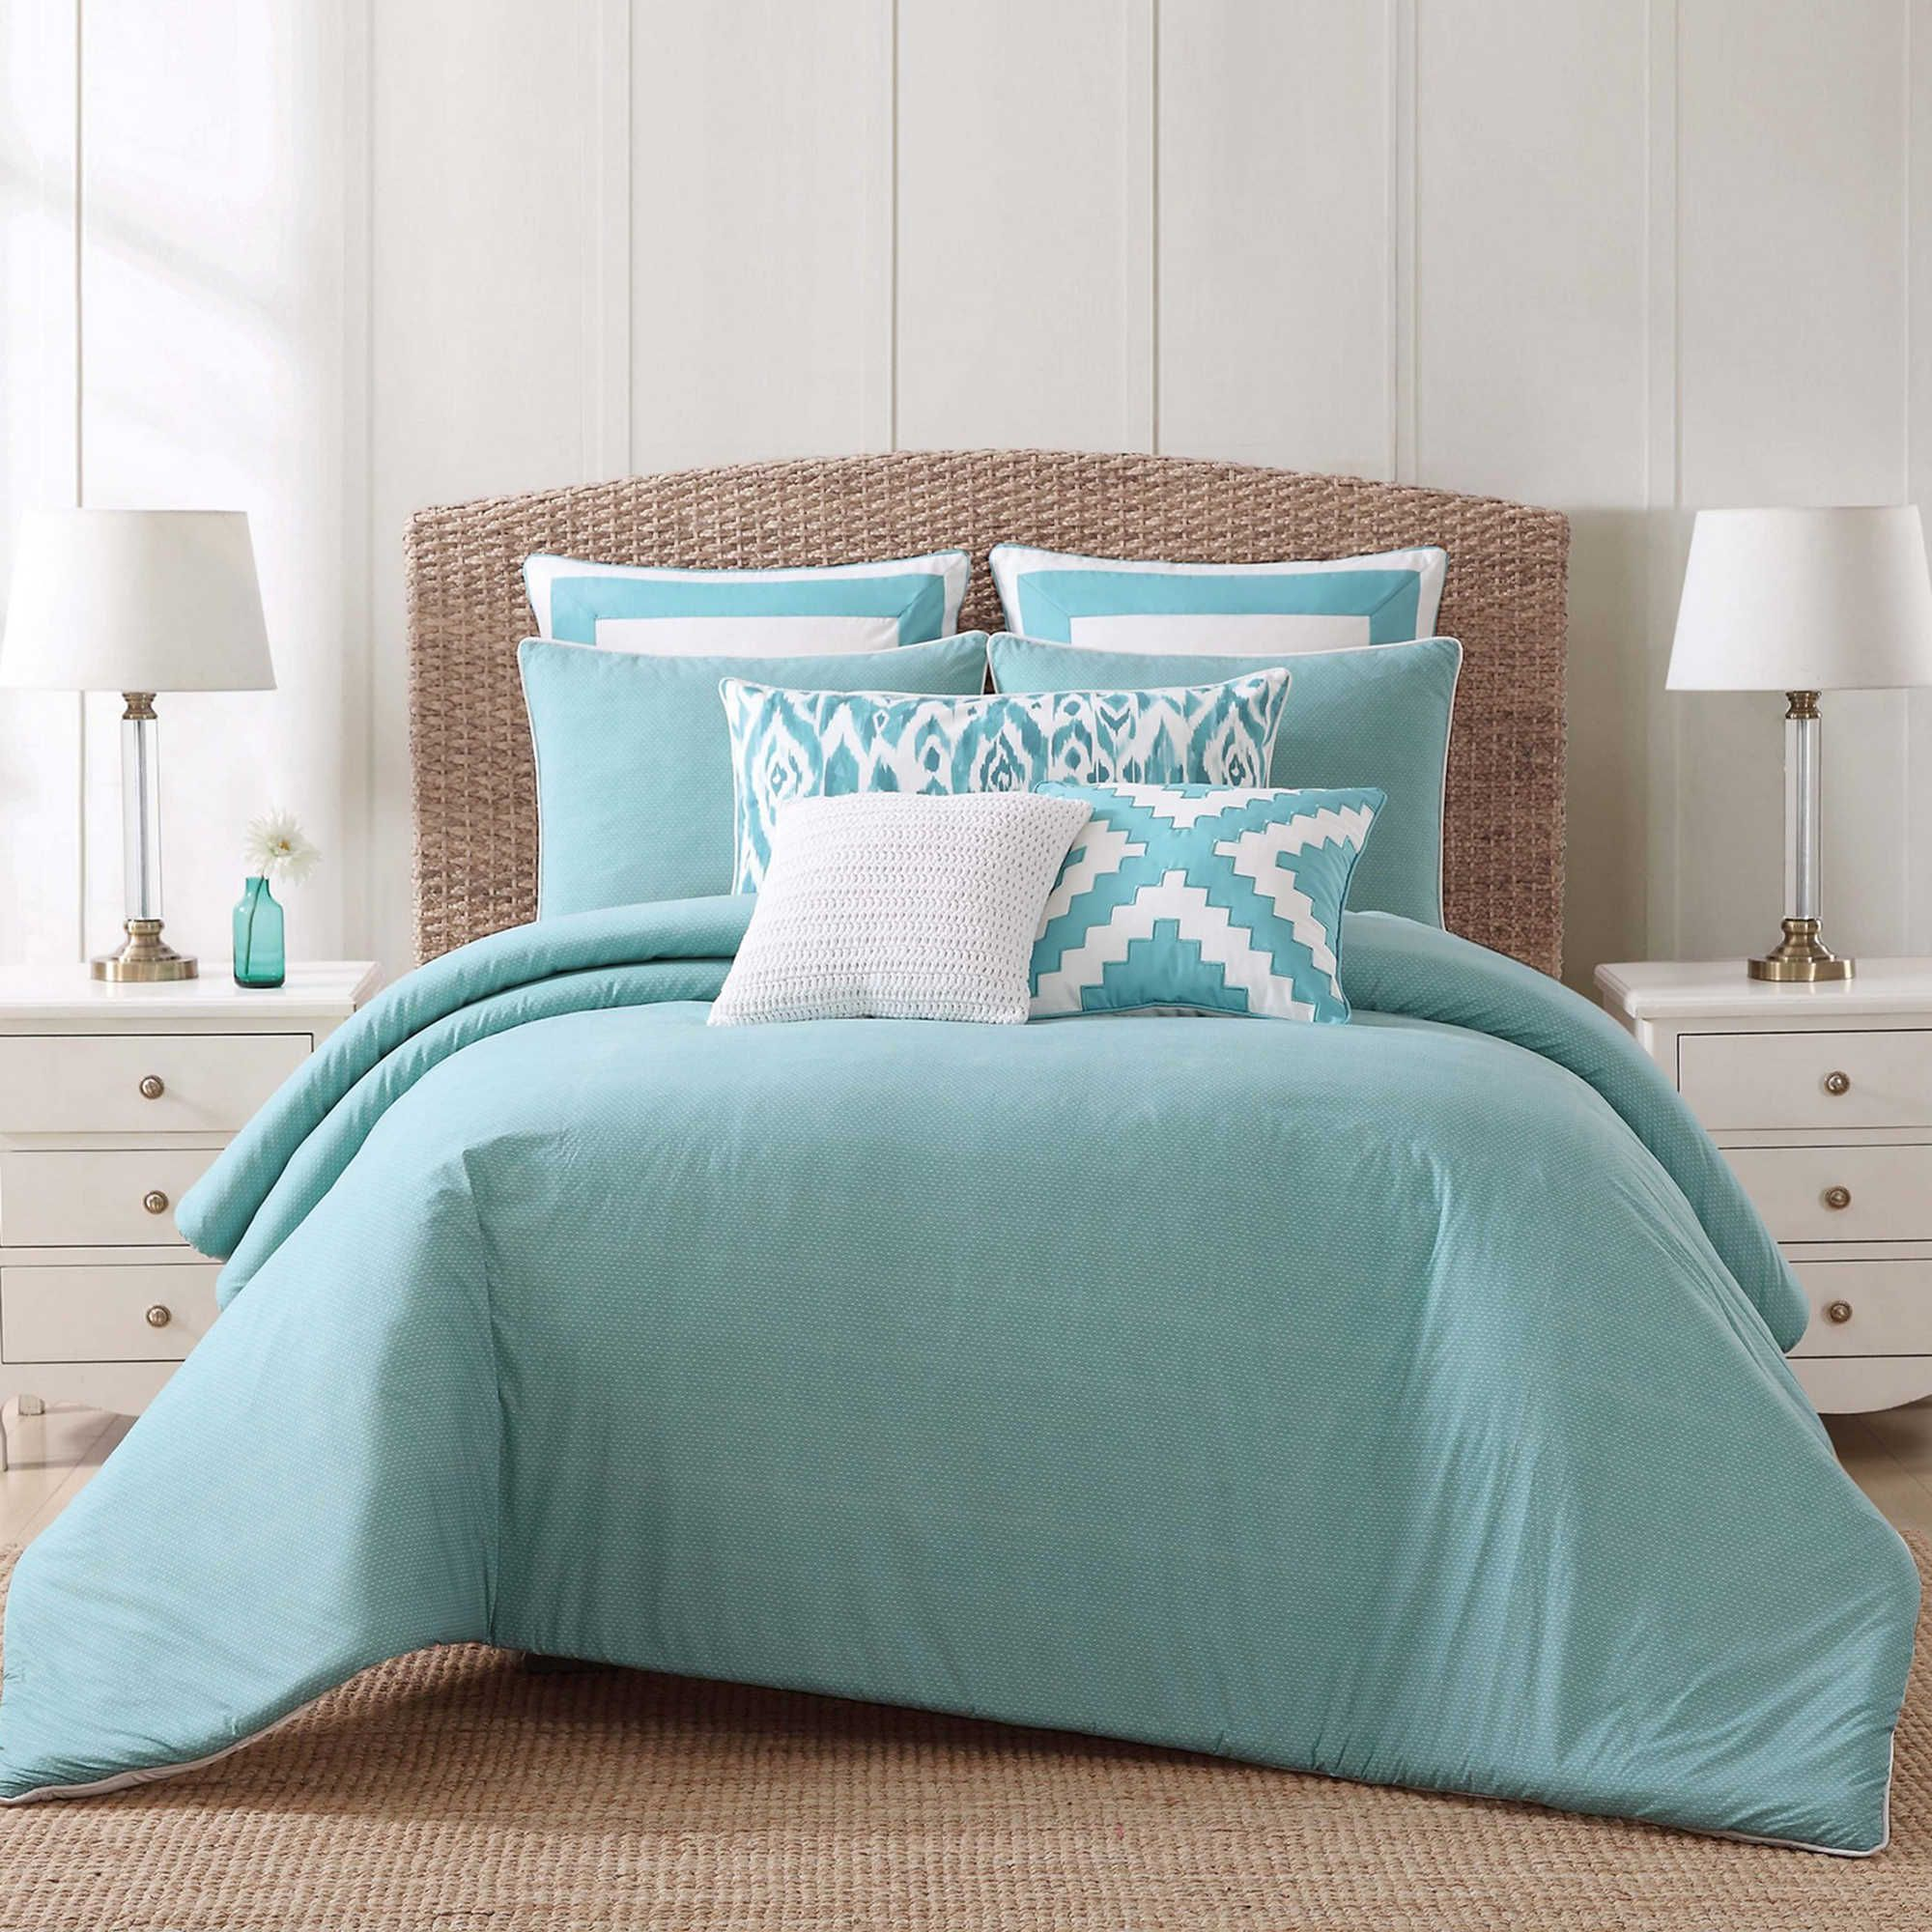 printed sets bertie spare teal set room pin cover pinterest duvet